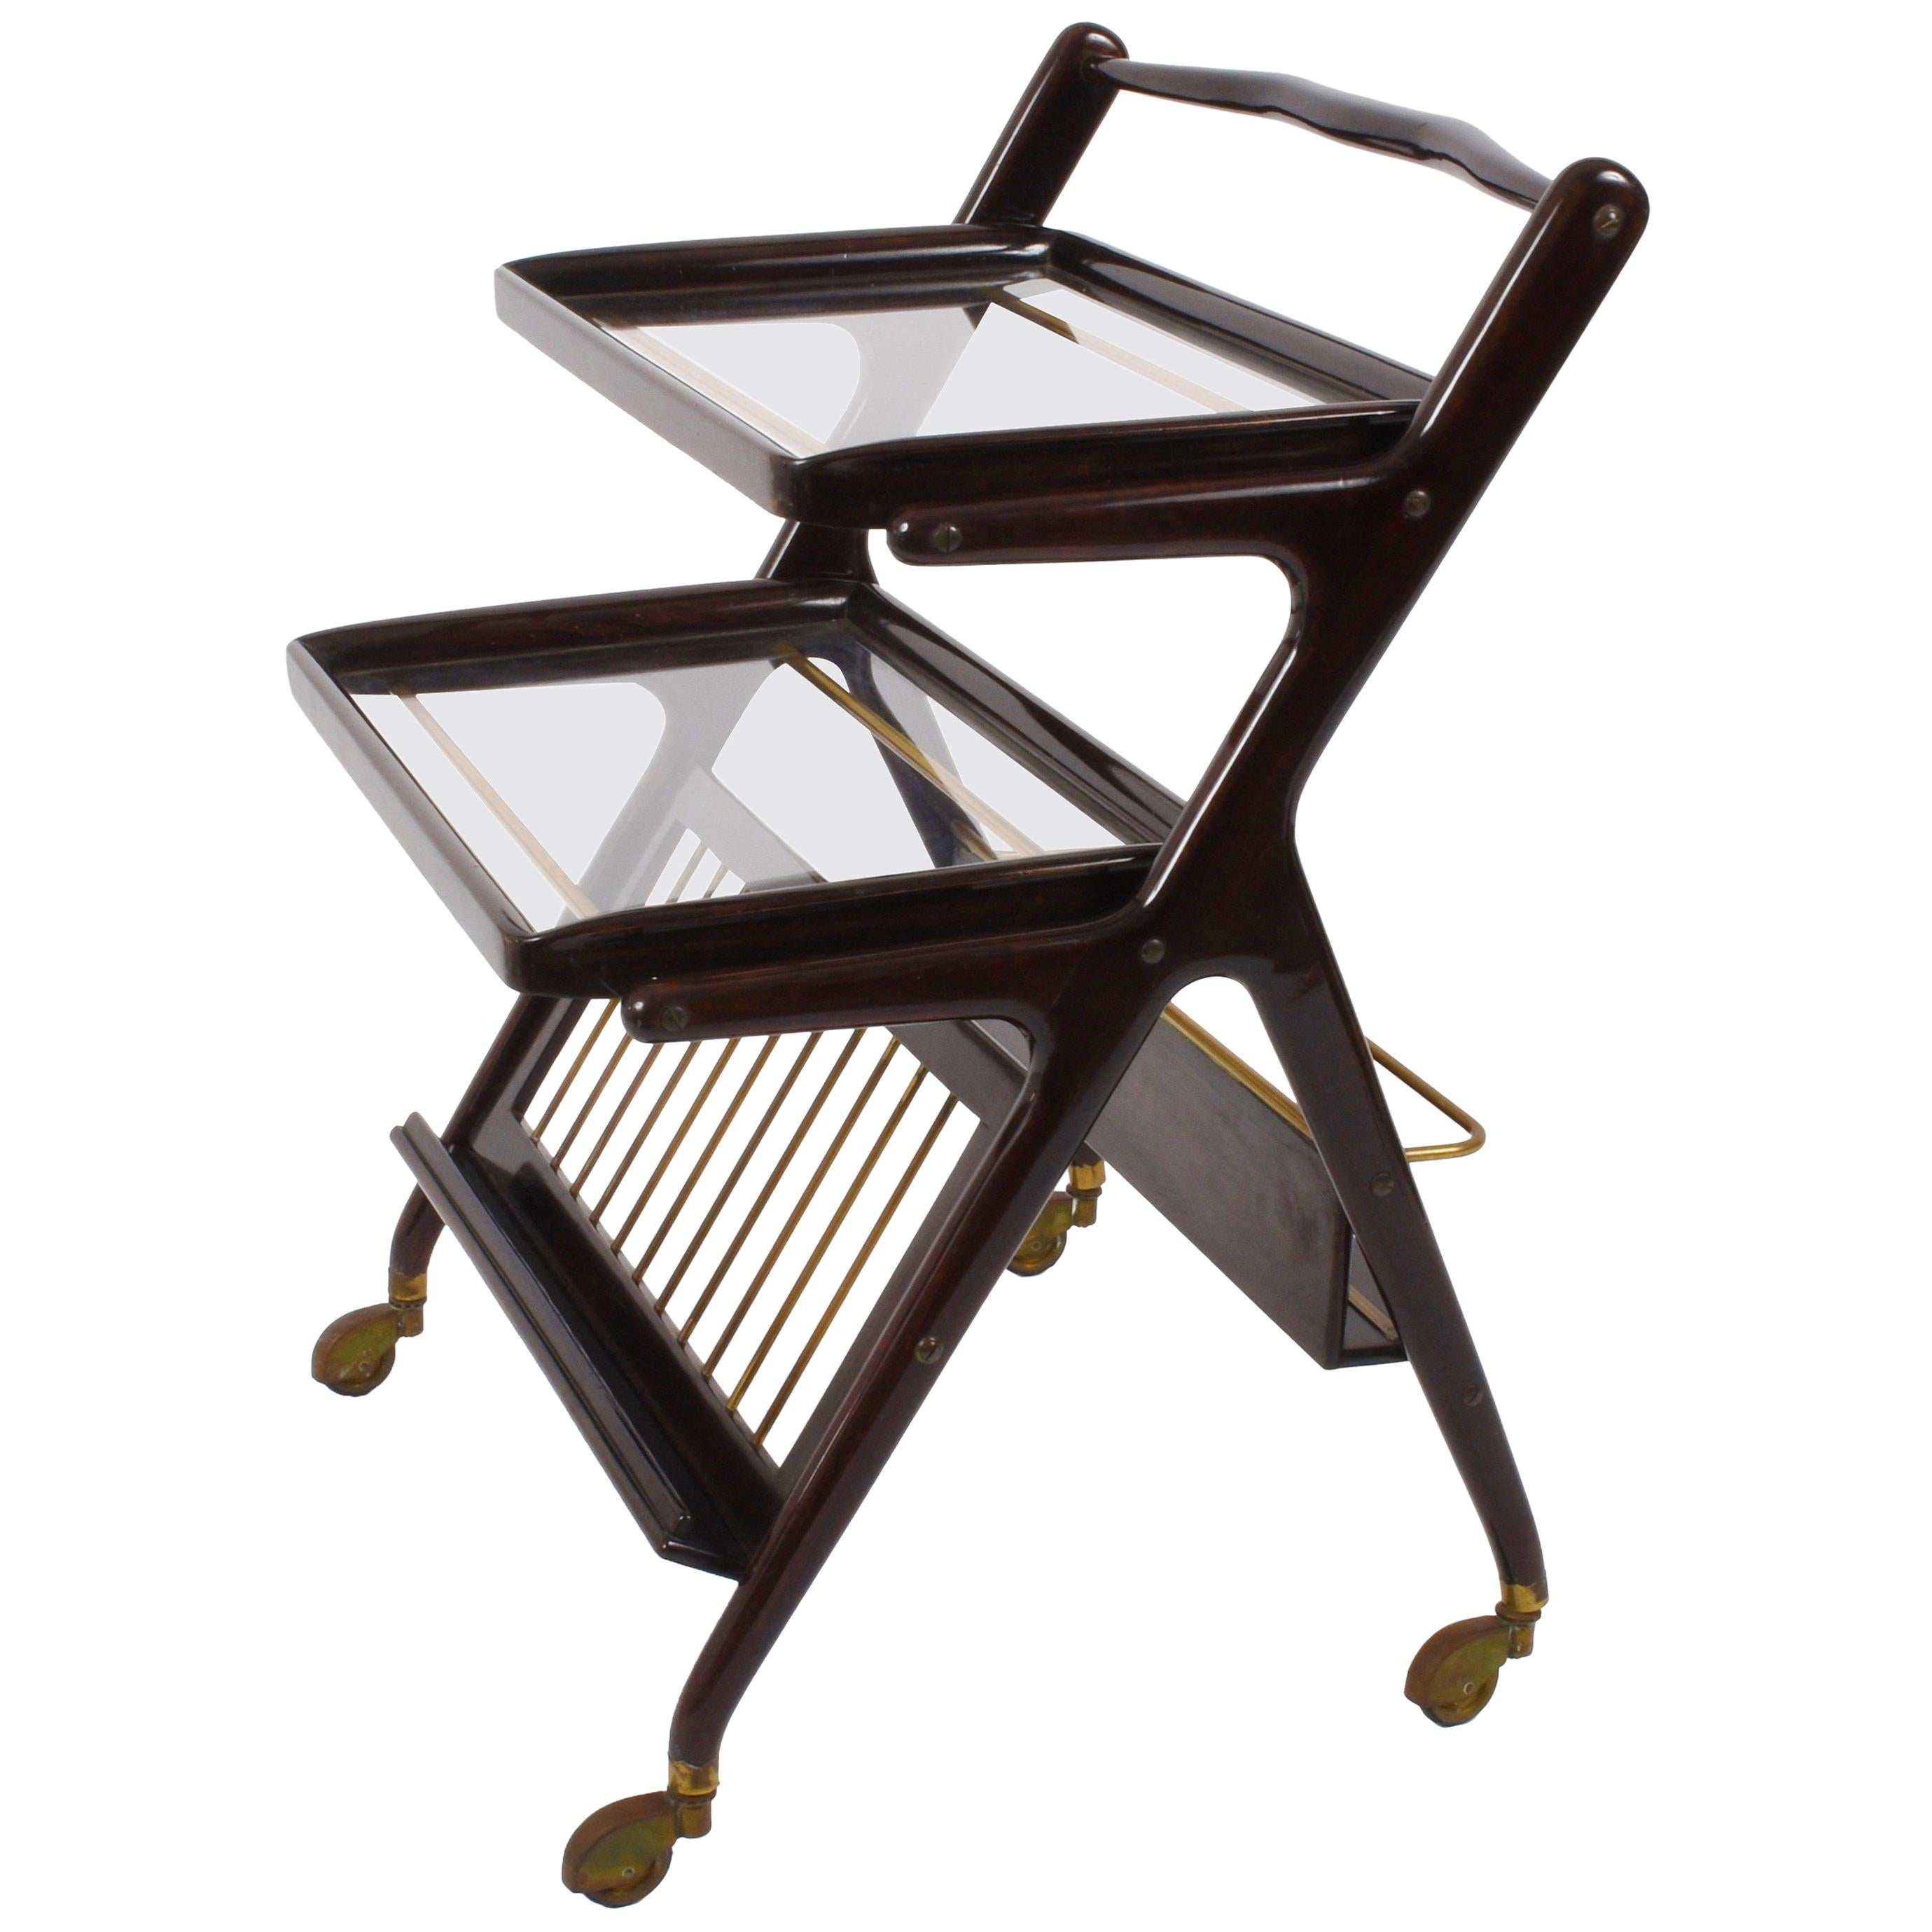 Midcentury Cesare Lacca Wood Italian Bar Cart with Serving Trays, 1950s